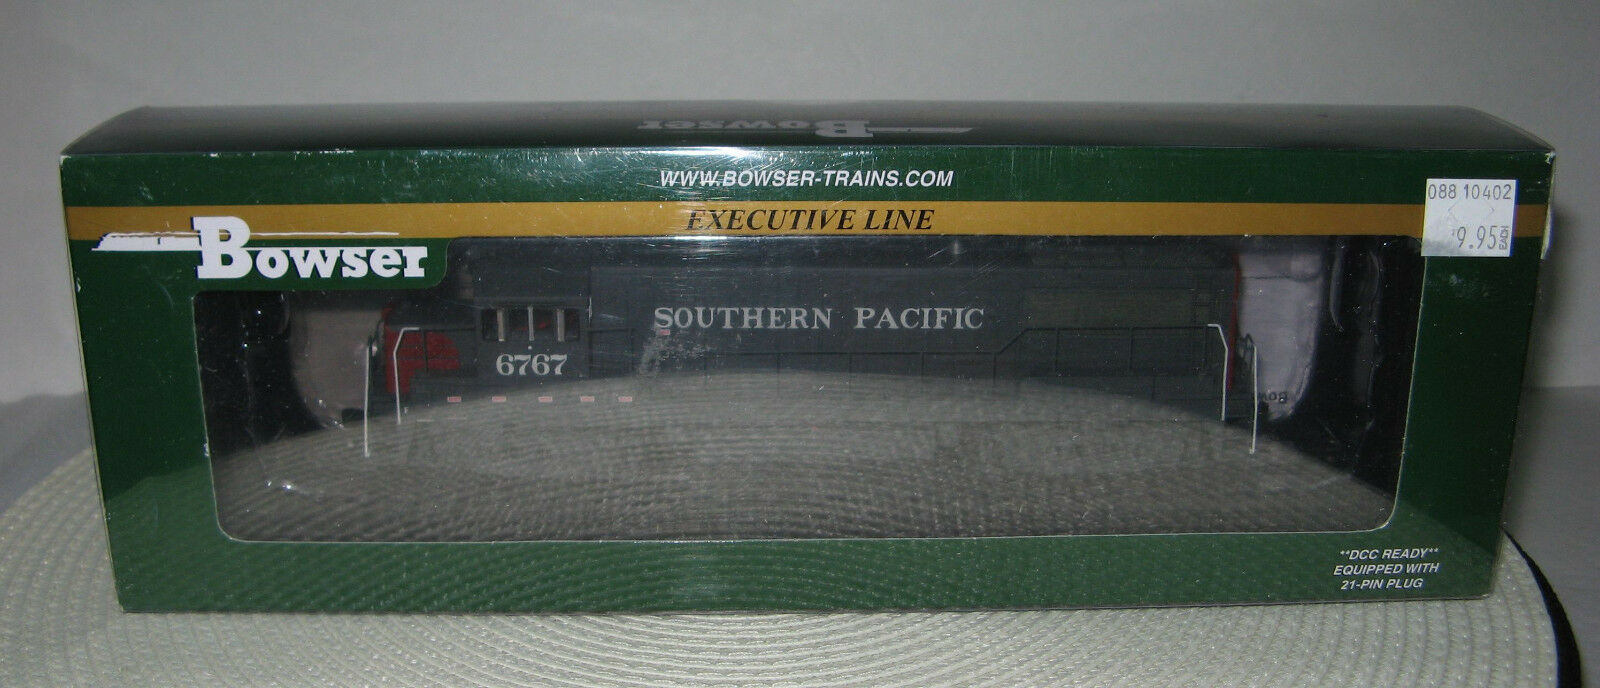 HO Bowser GE U-25-B SP 6767 Locomotive Southern Pacific  24561 DCC Ready w/Box